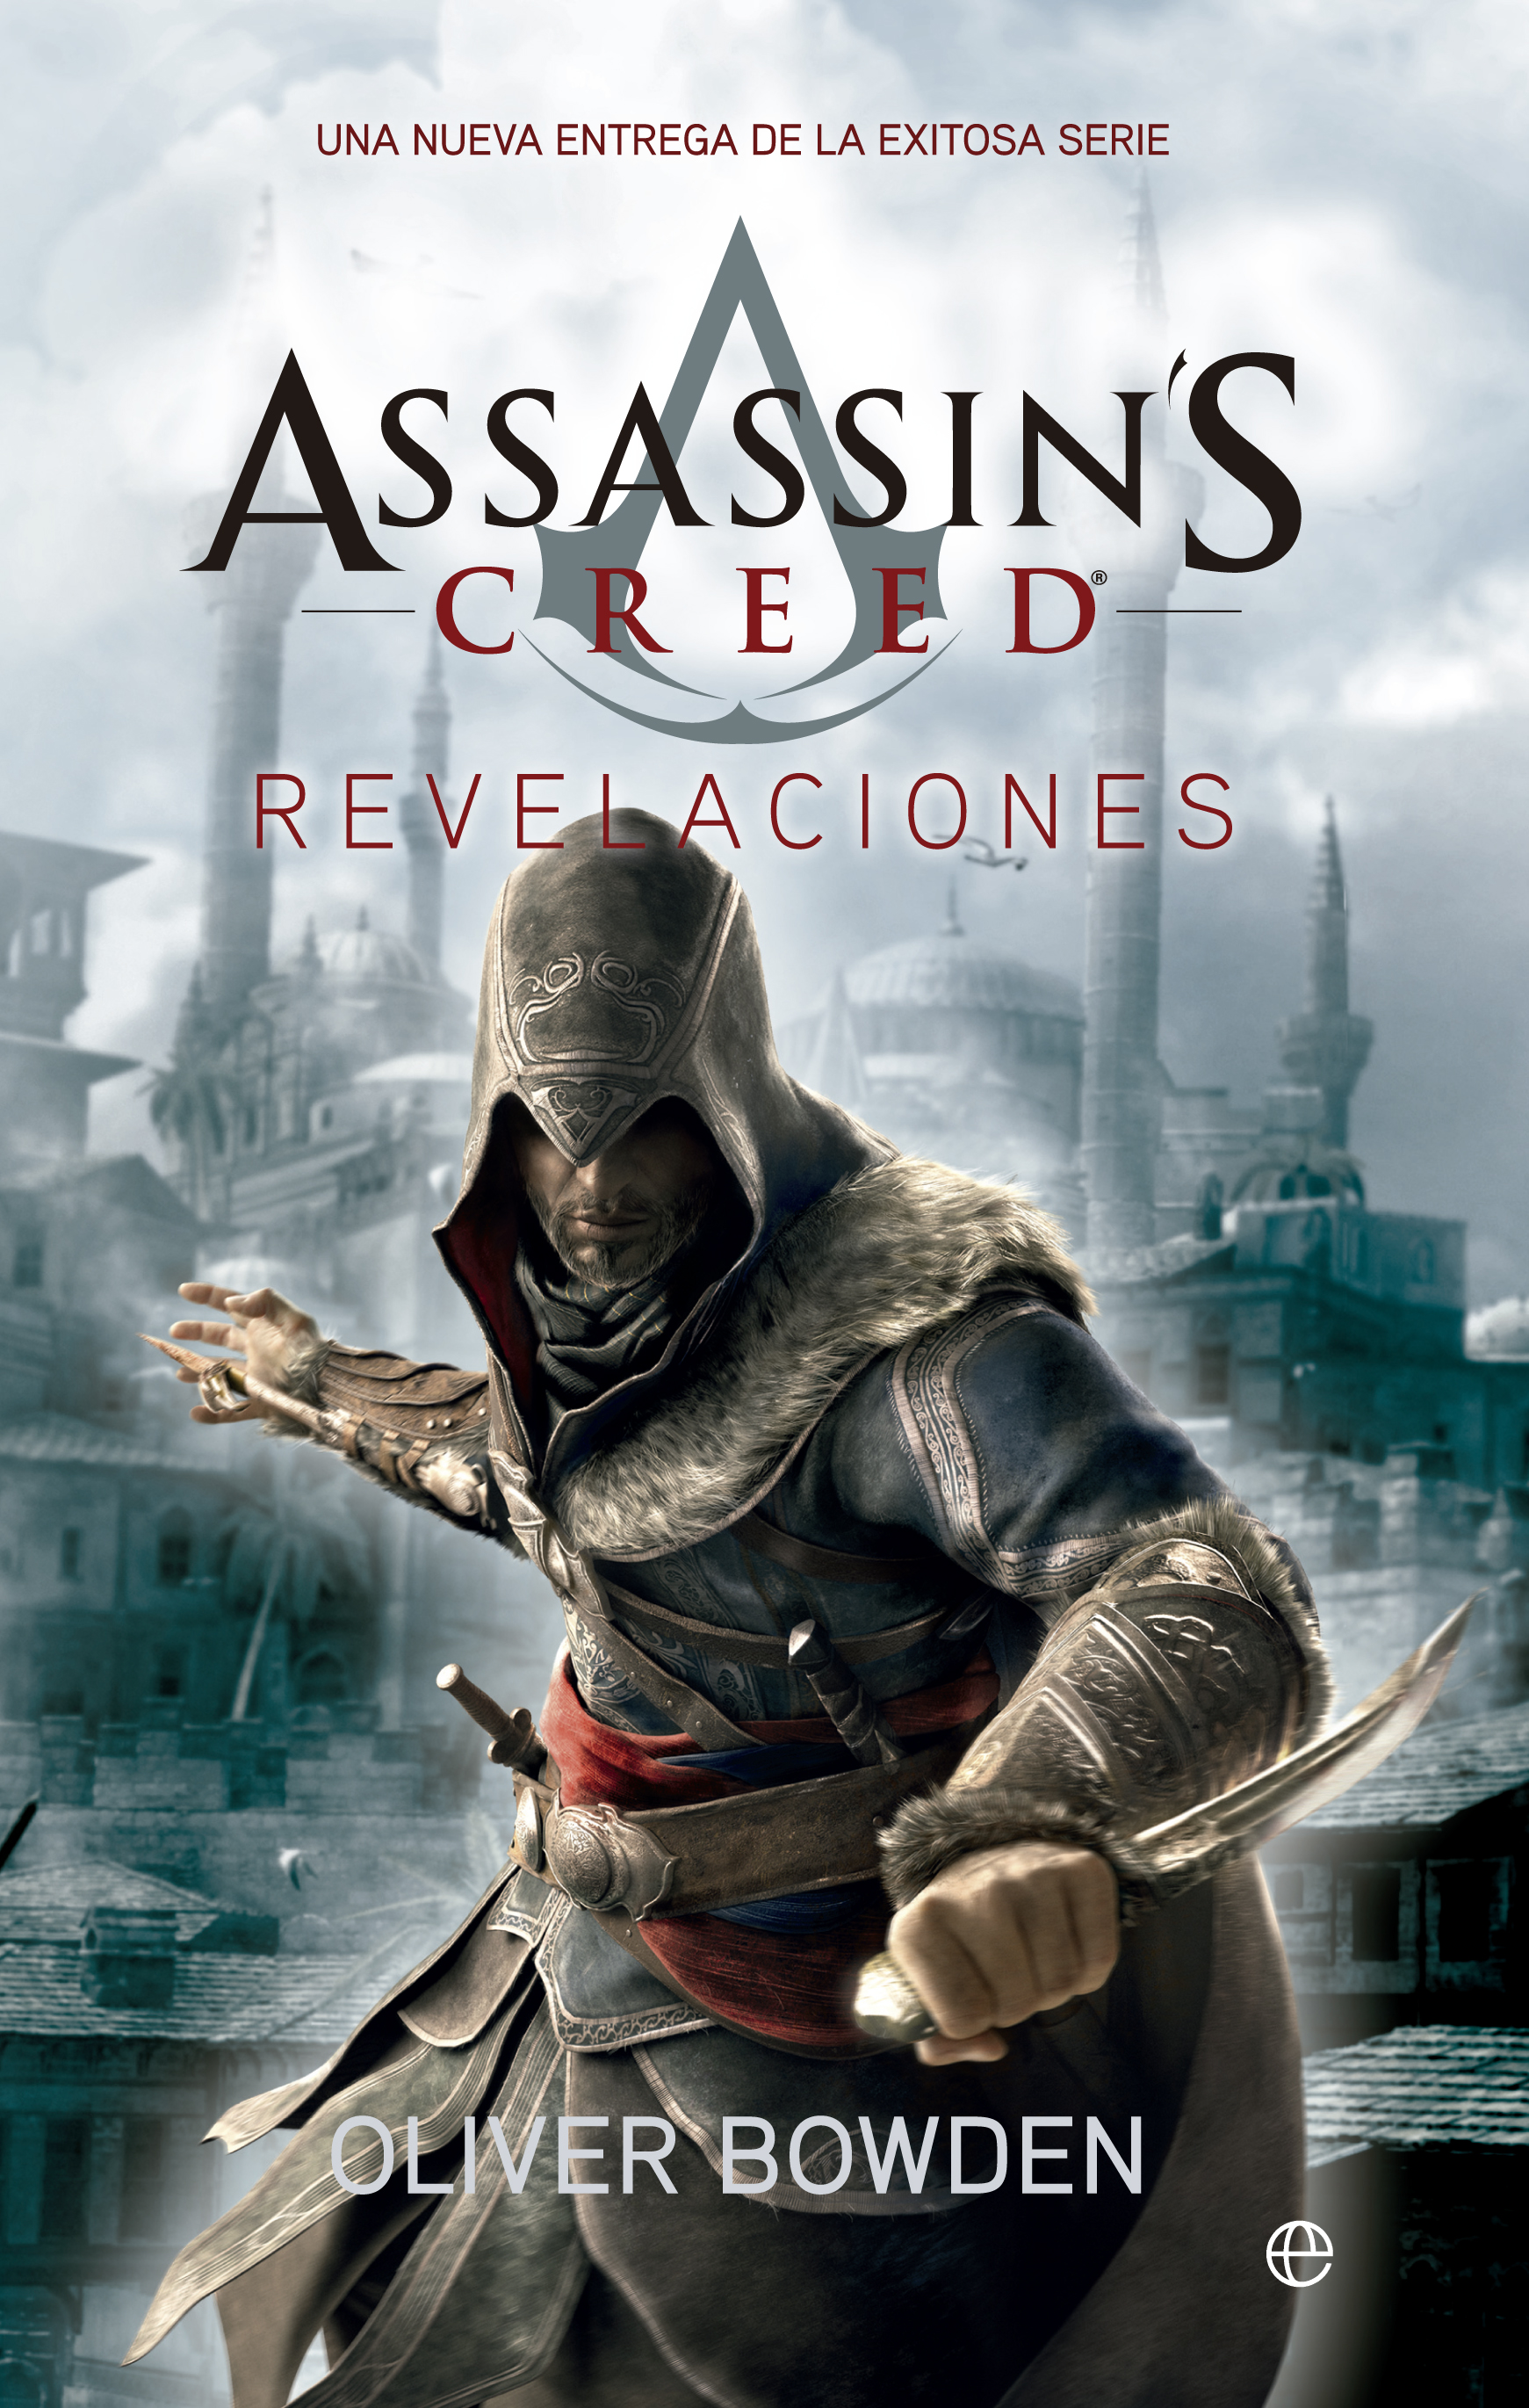 Assassins Creed Libros Revelations Assassin 39s Creed Center